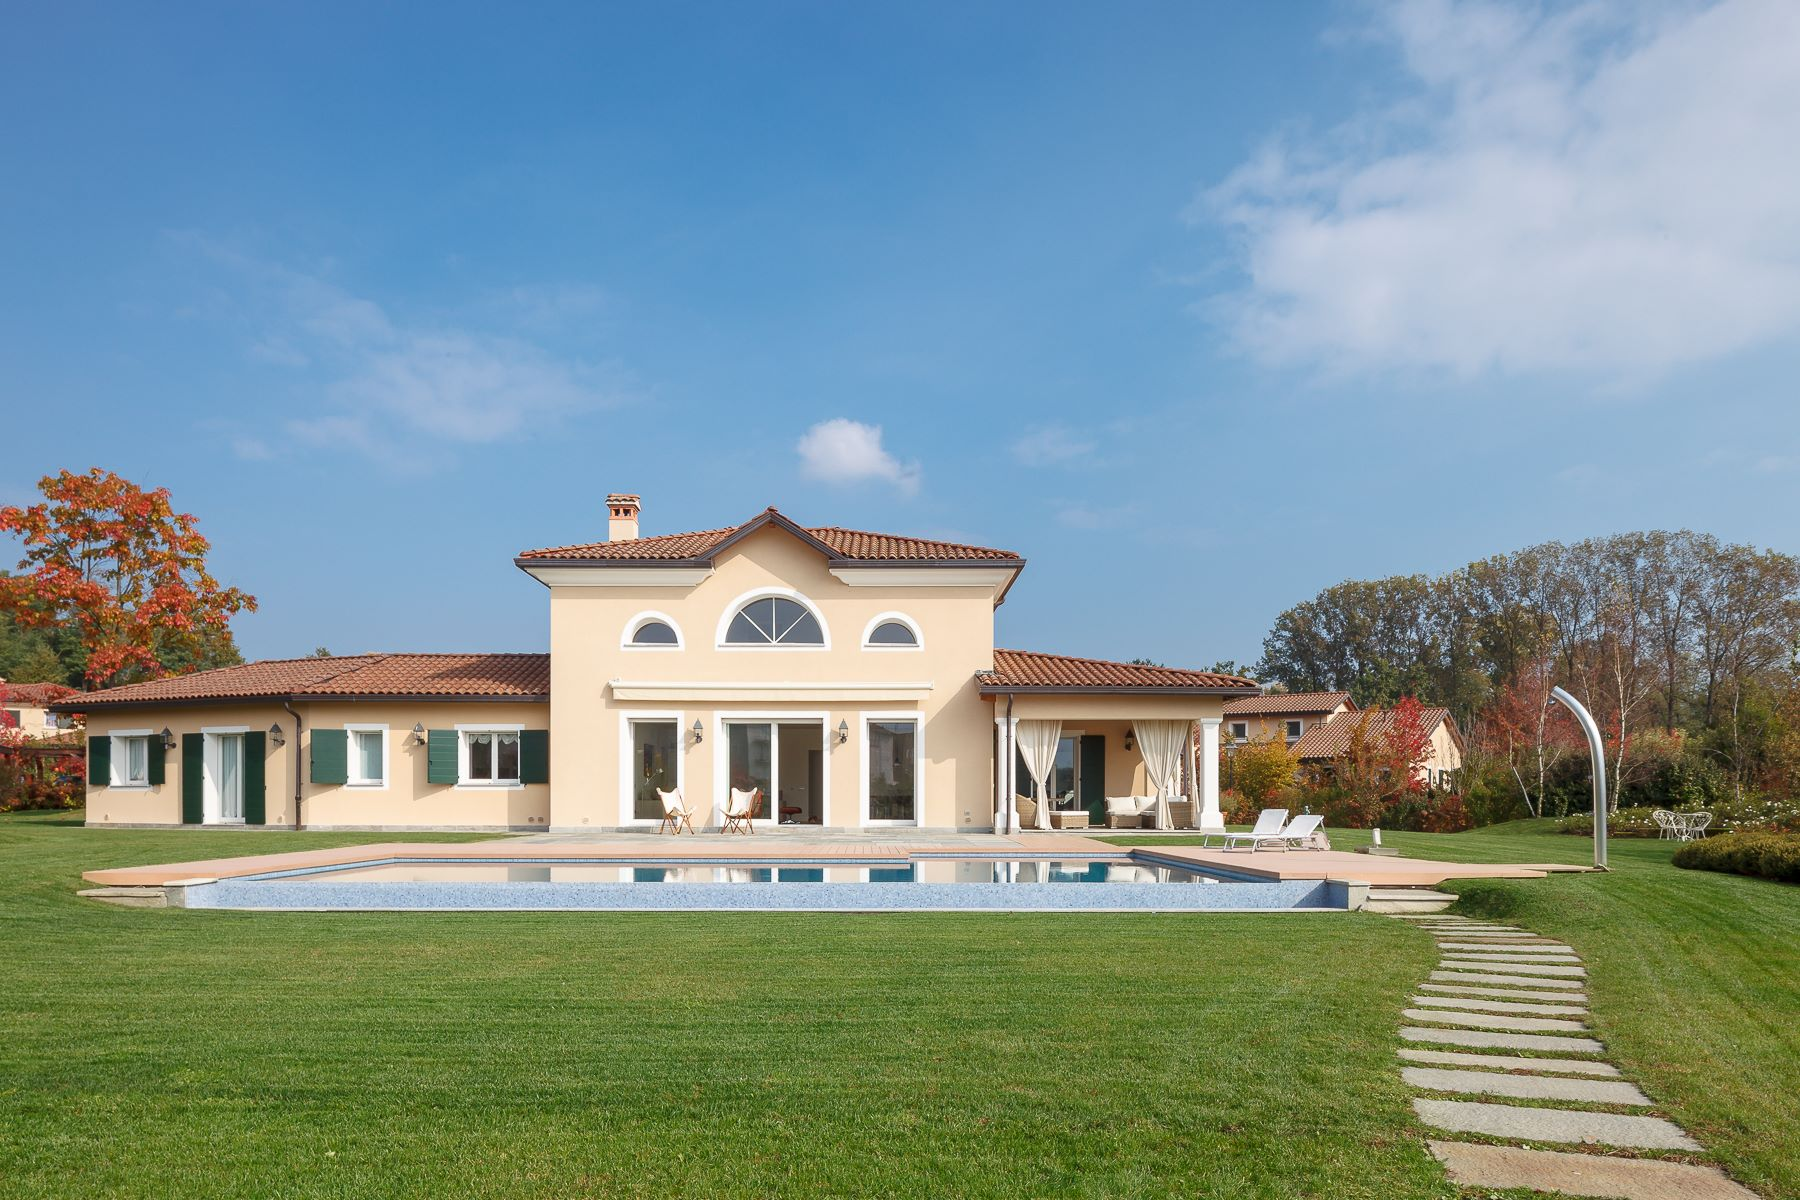 Single Family Home for Sale at Wonderful villa on two levels within the Golf Club of Bogogno Via San Isidoro Bogogno, Novara 28010 Italy